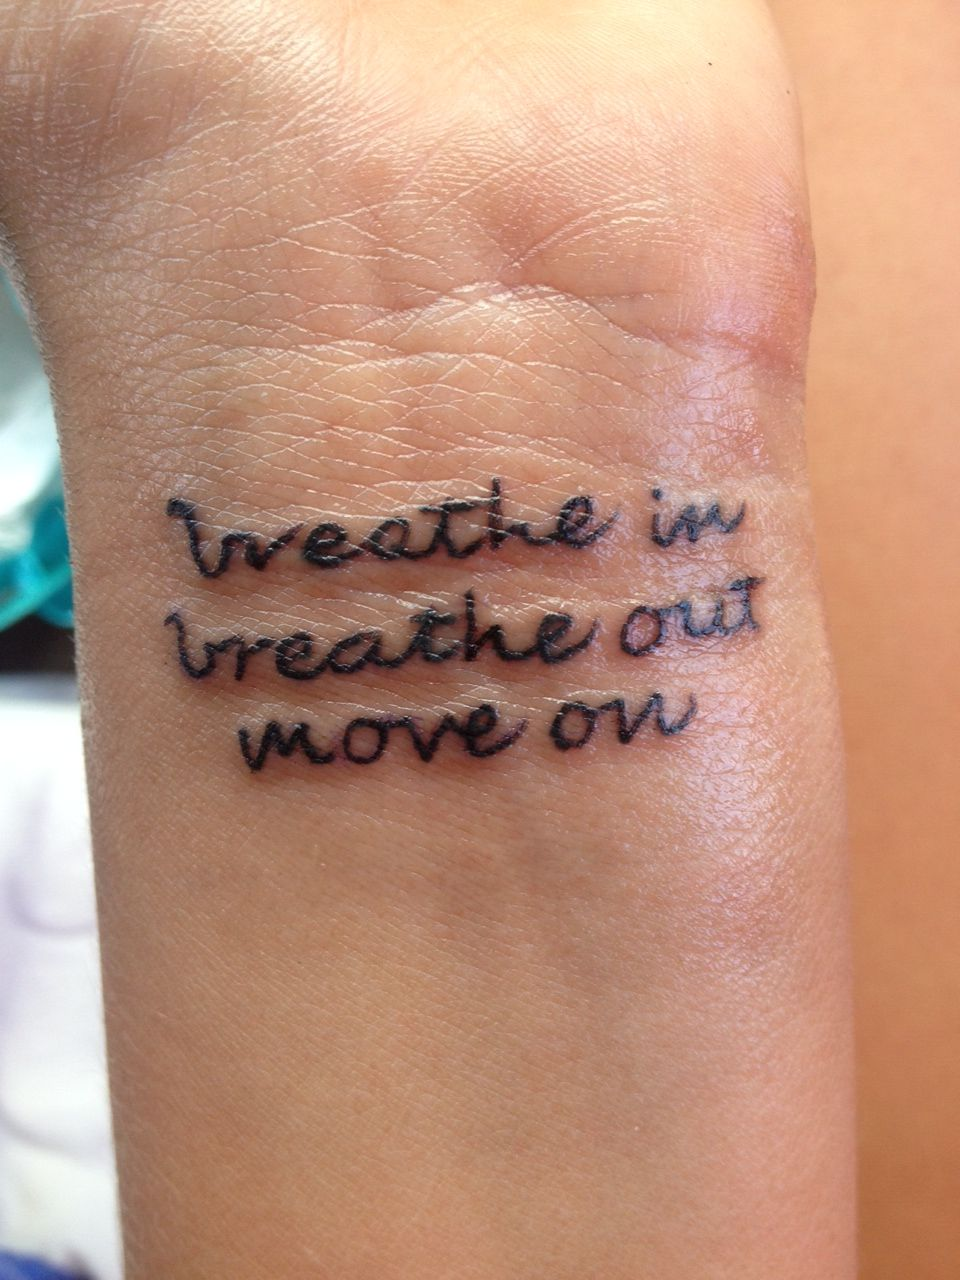 Tattoo in memory of my uncle he loved this quote by jimmy buffett tattoo designs biocorpaavc Images